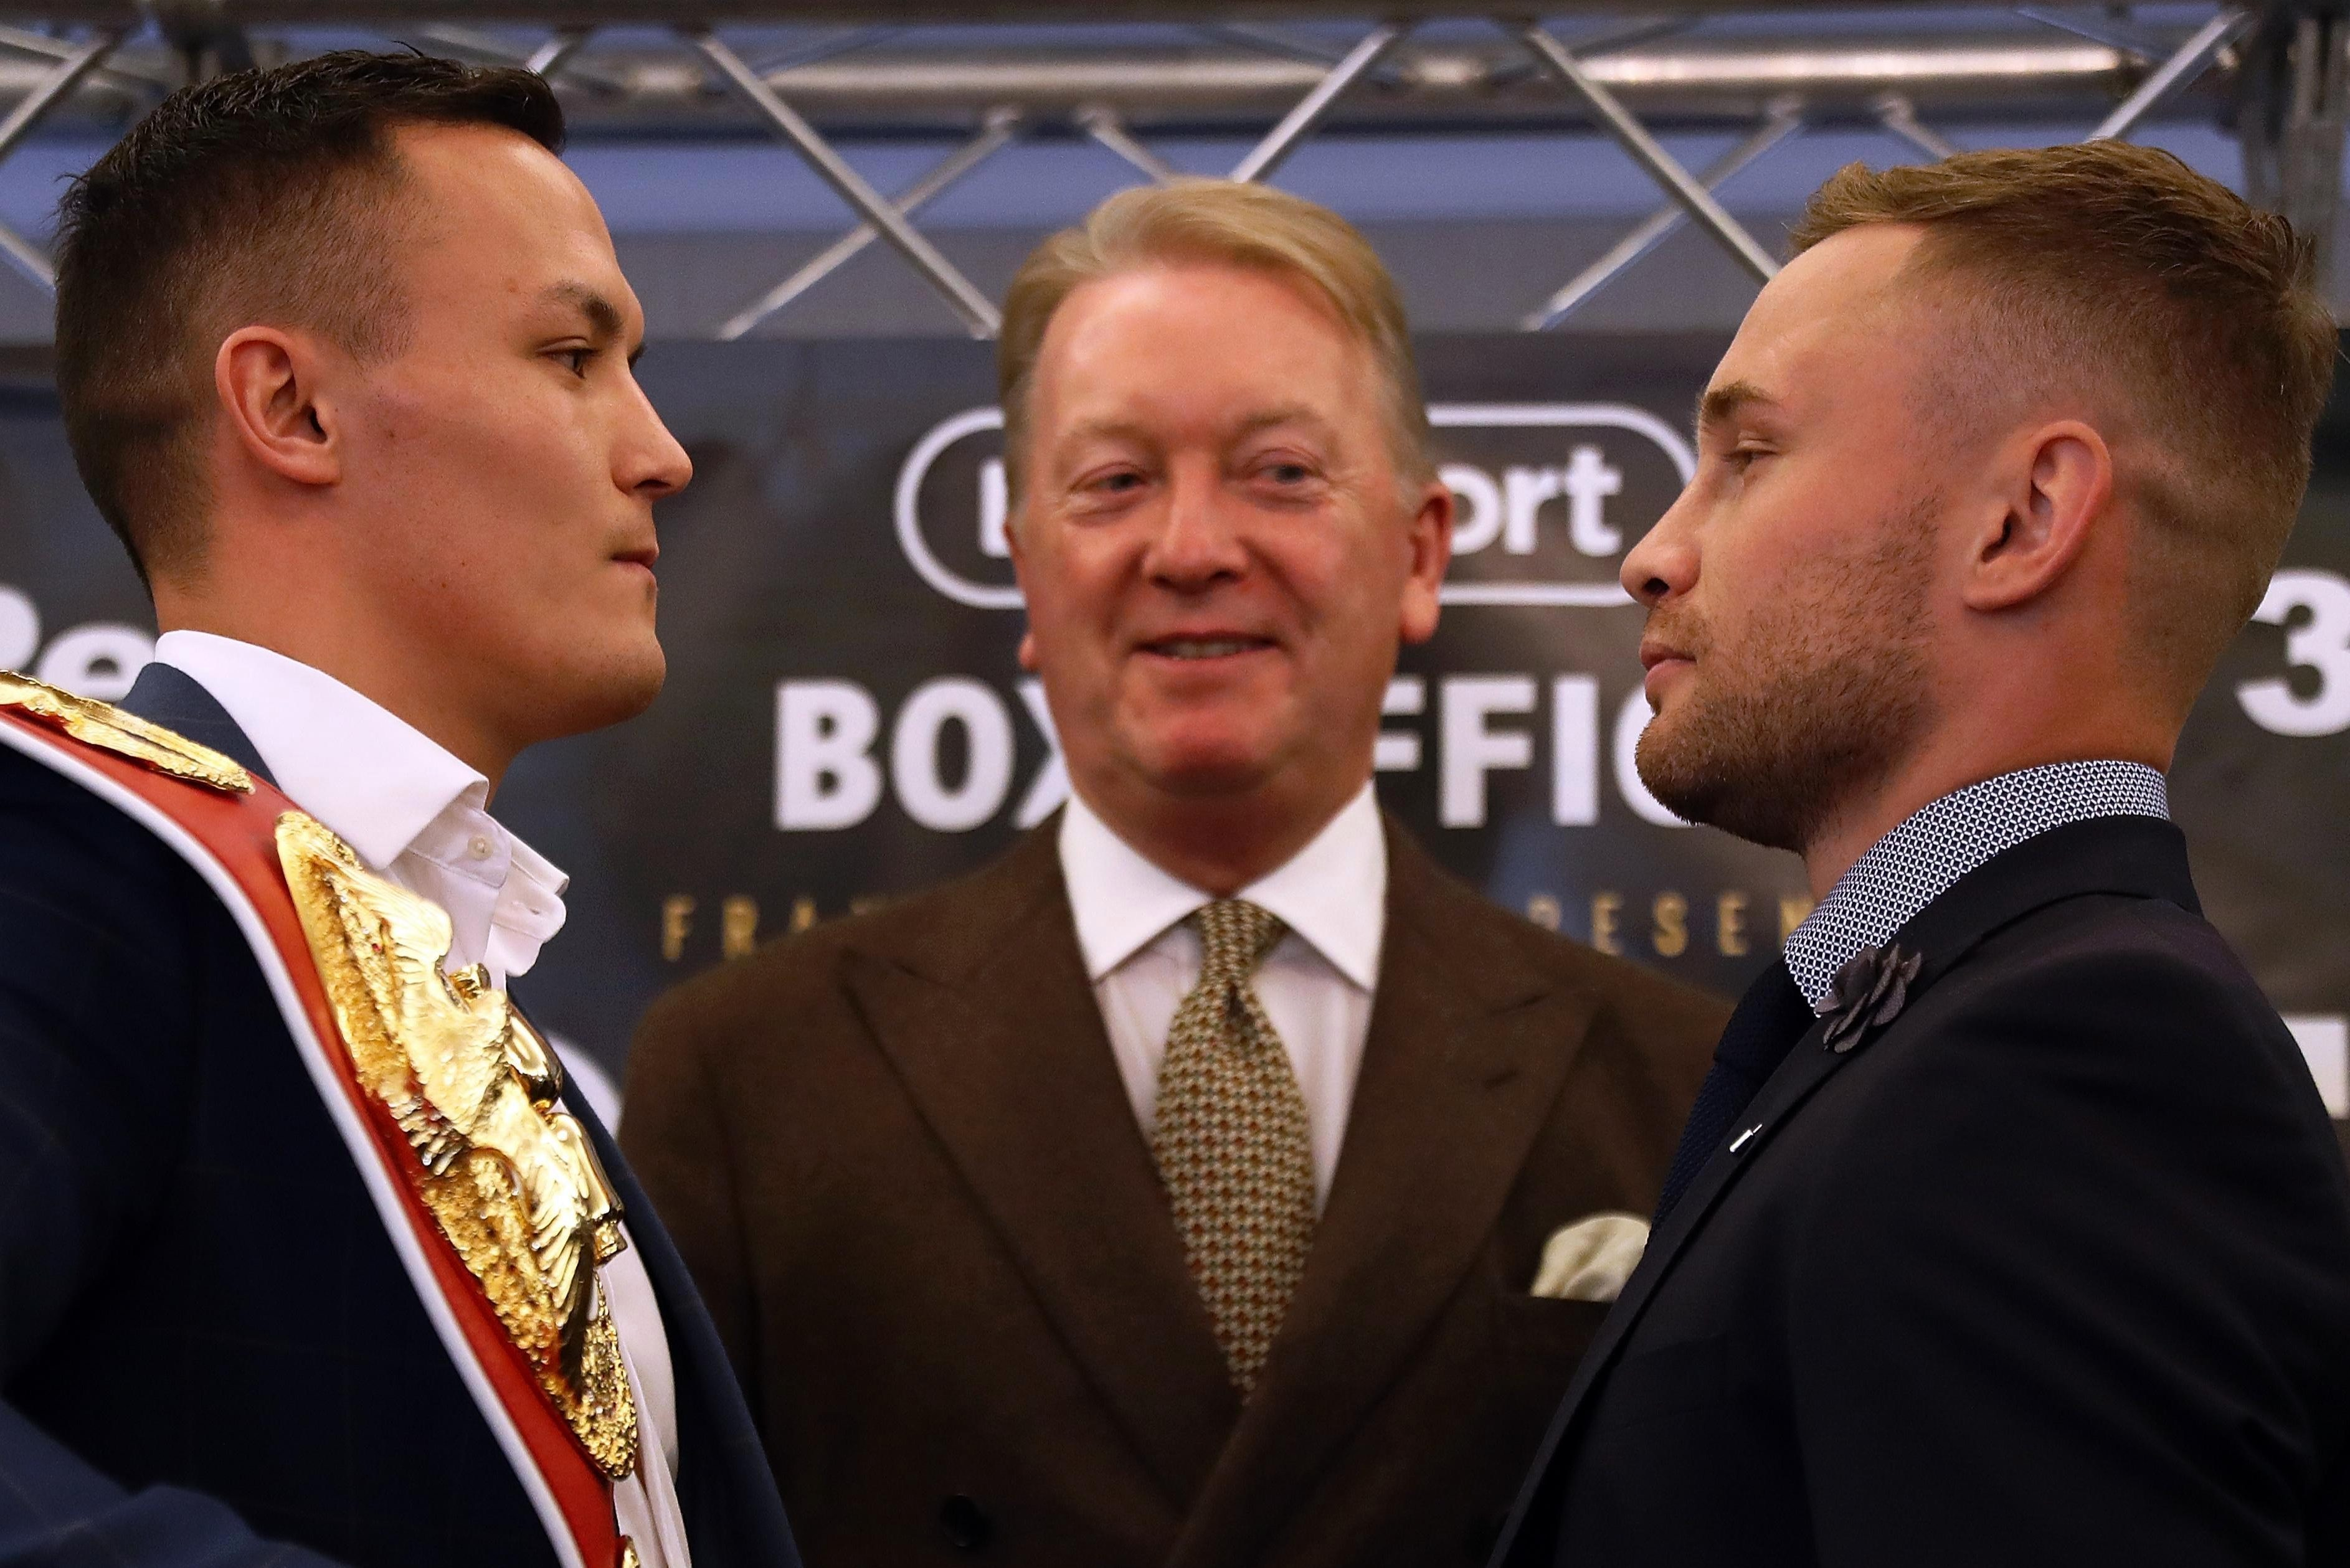 Warrington vs Frampton: Live stream, TV channel, start time, tickets and undercard for the featherweight world title fight